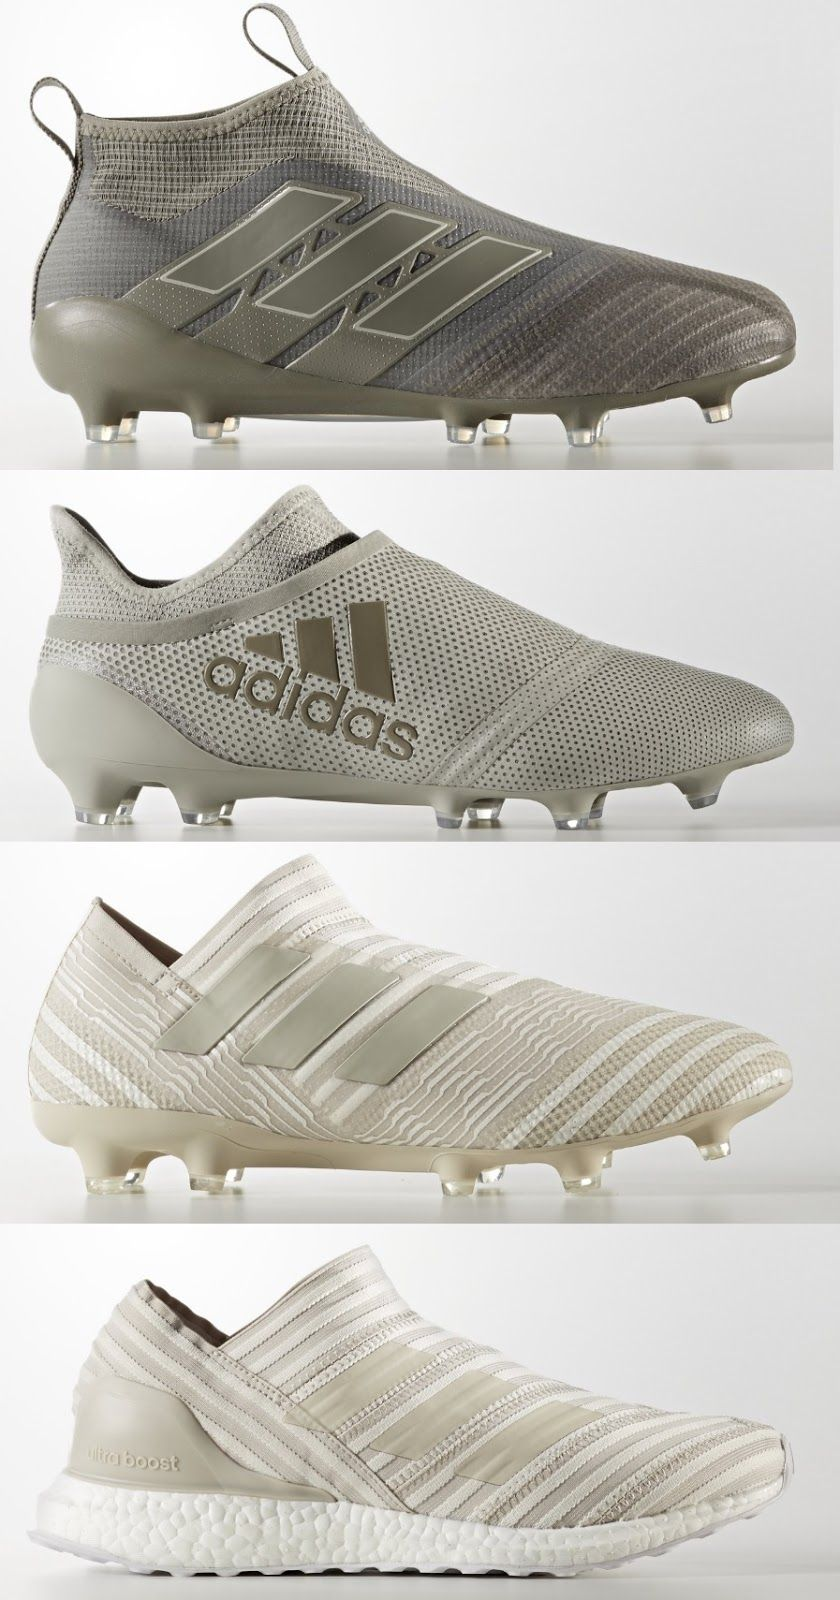 9f6a58c9538e Called the Adidas Earth Storm pack, the new Adidas November 2017 soccer  boots collection includes the Adidas Ace, Nemeziz and X silos.